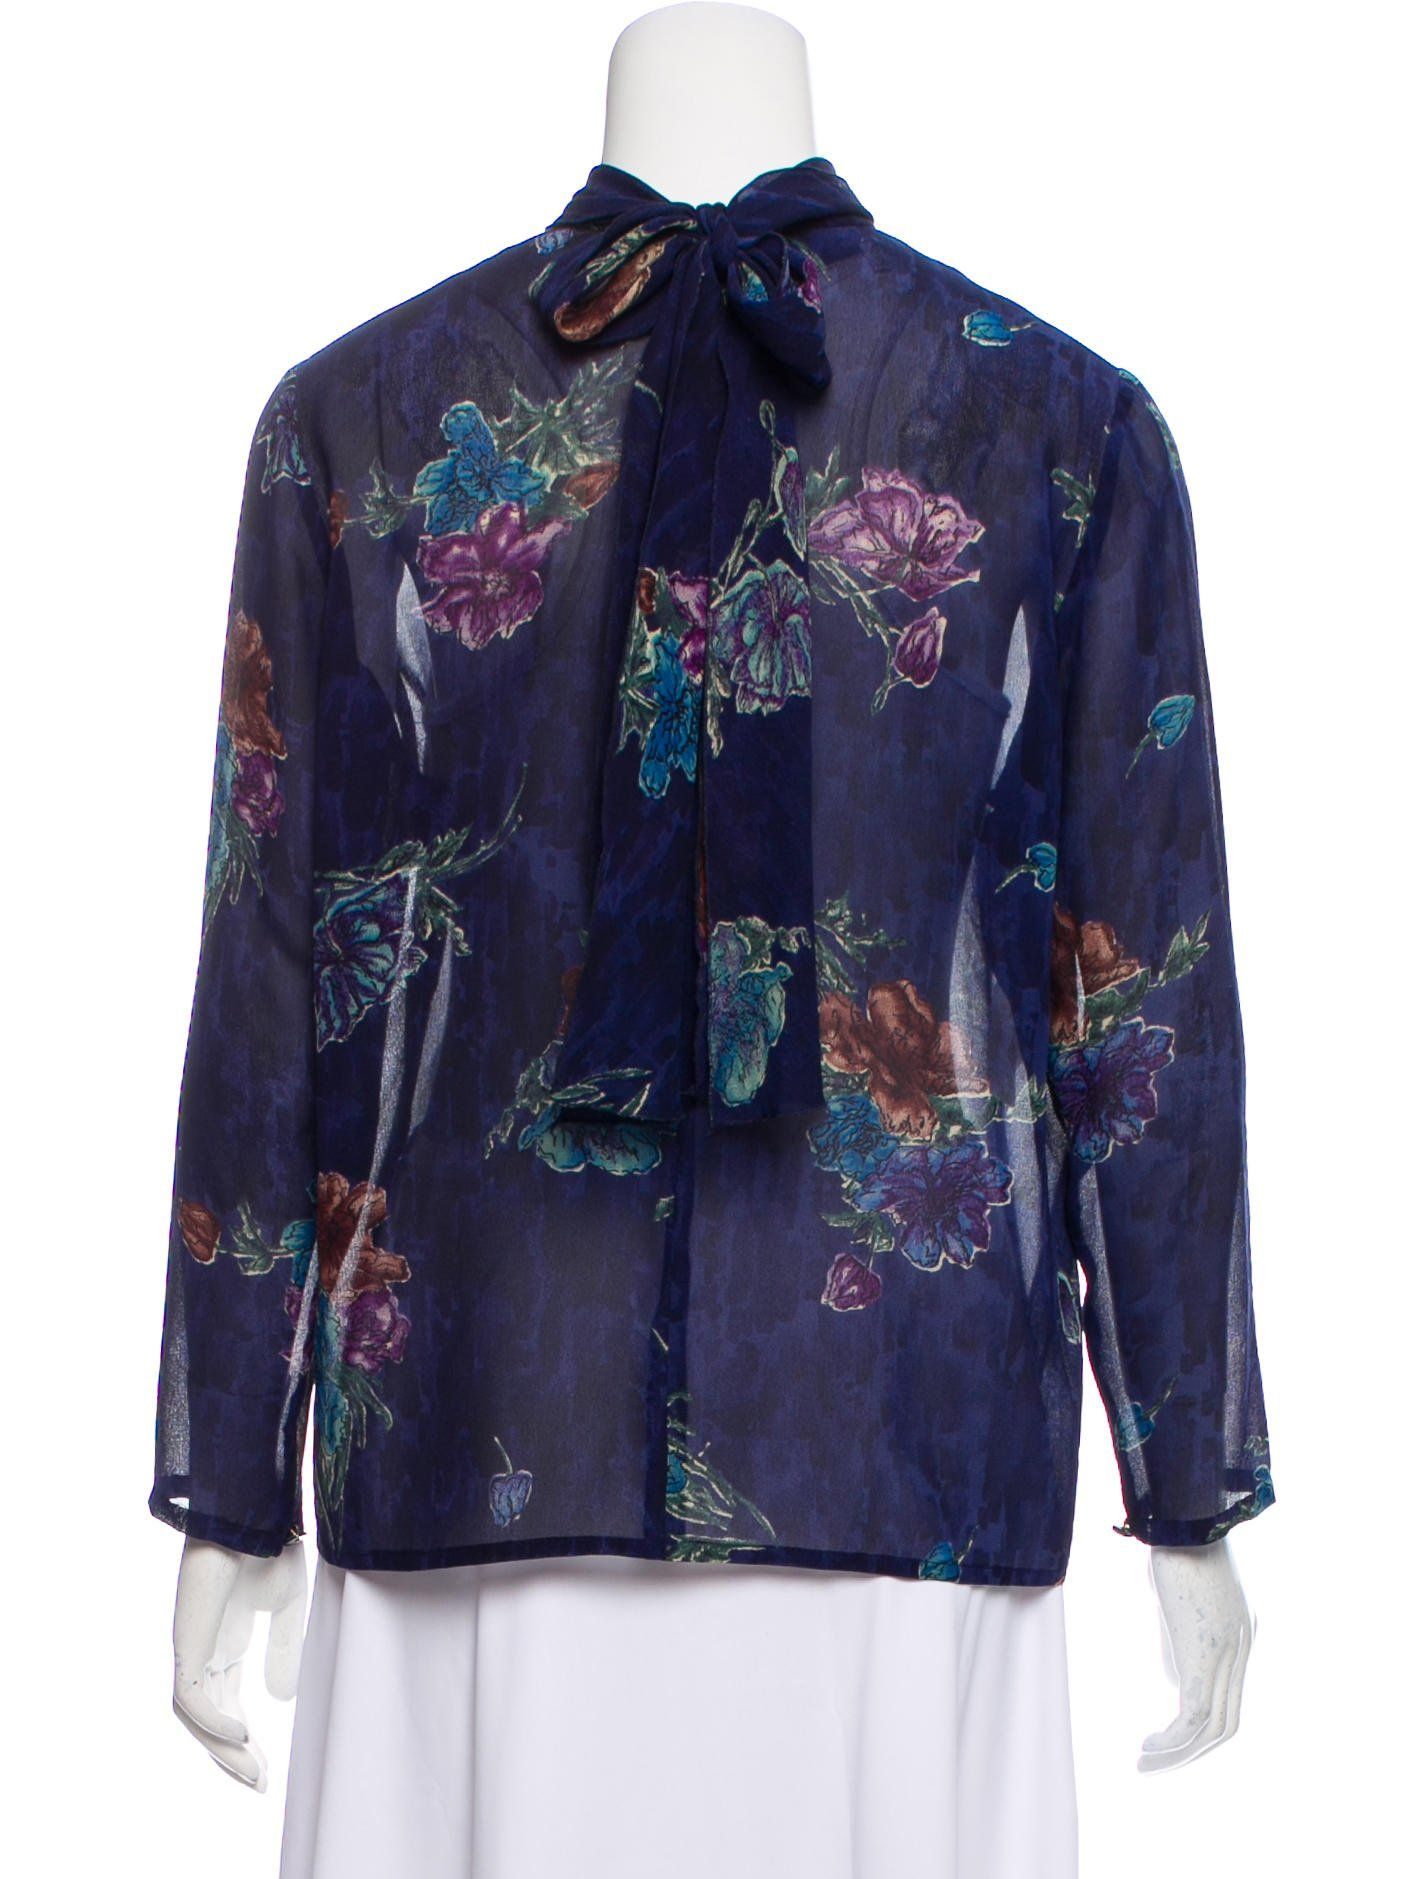 ad5a82d8dfd25 Navy and multicolor Emanuel Ungaro chiffon blouse with floral print  throughout